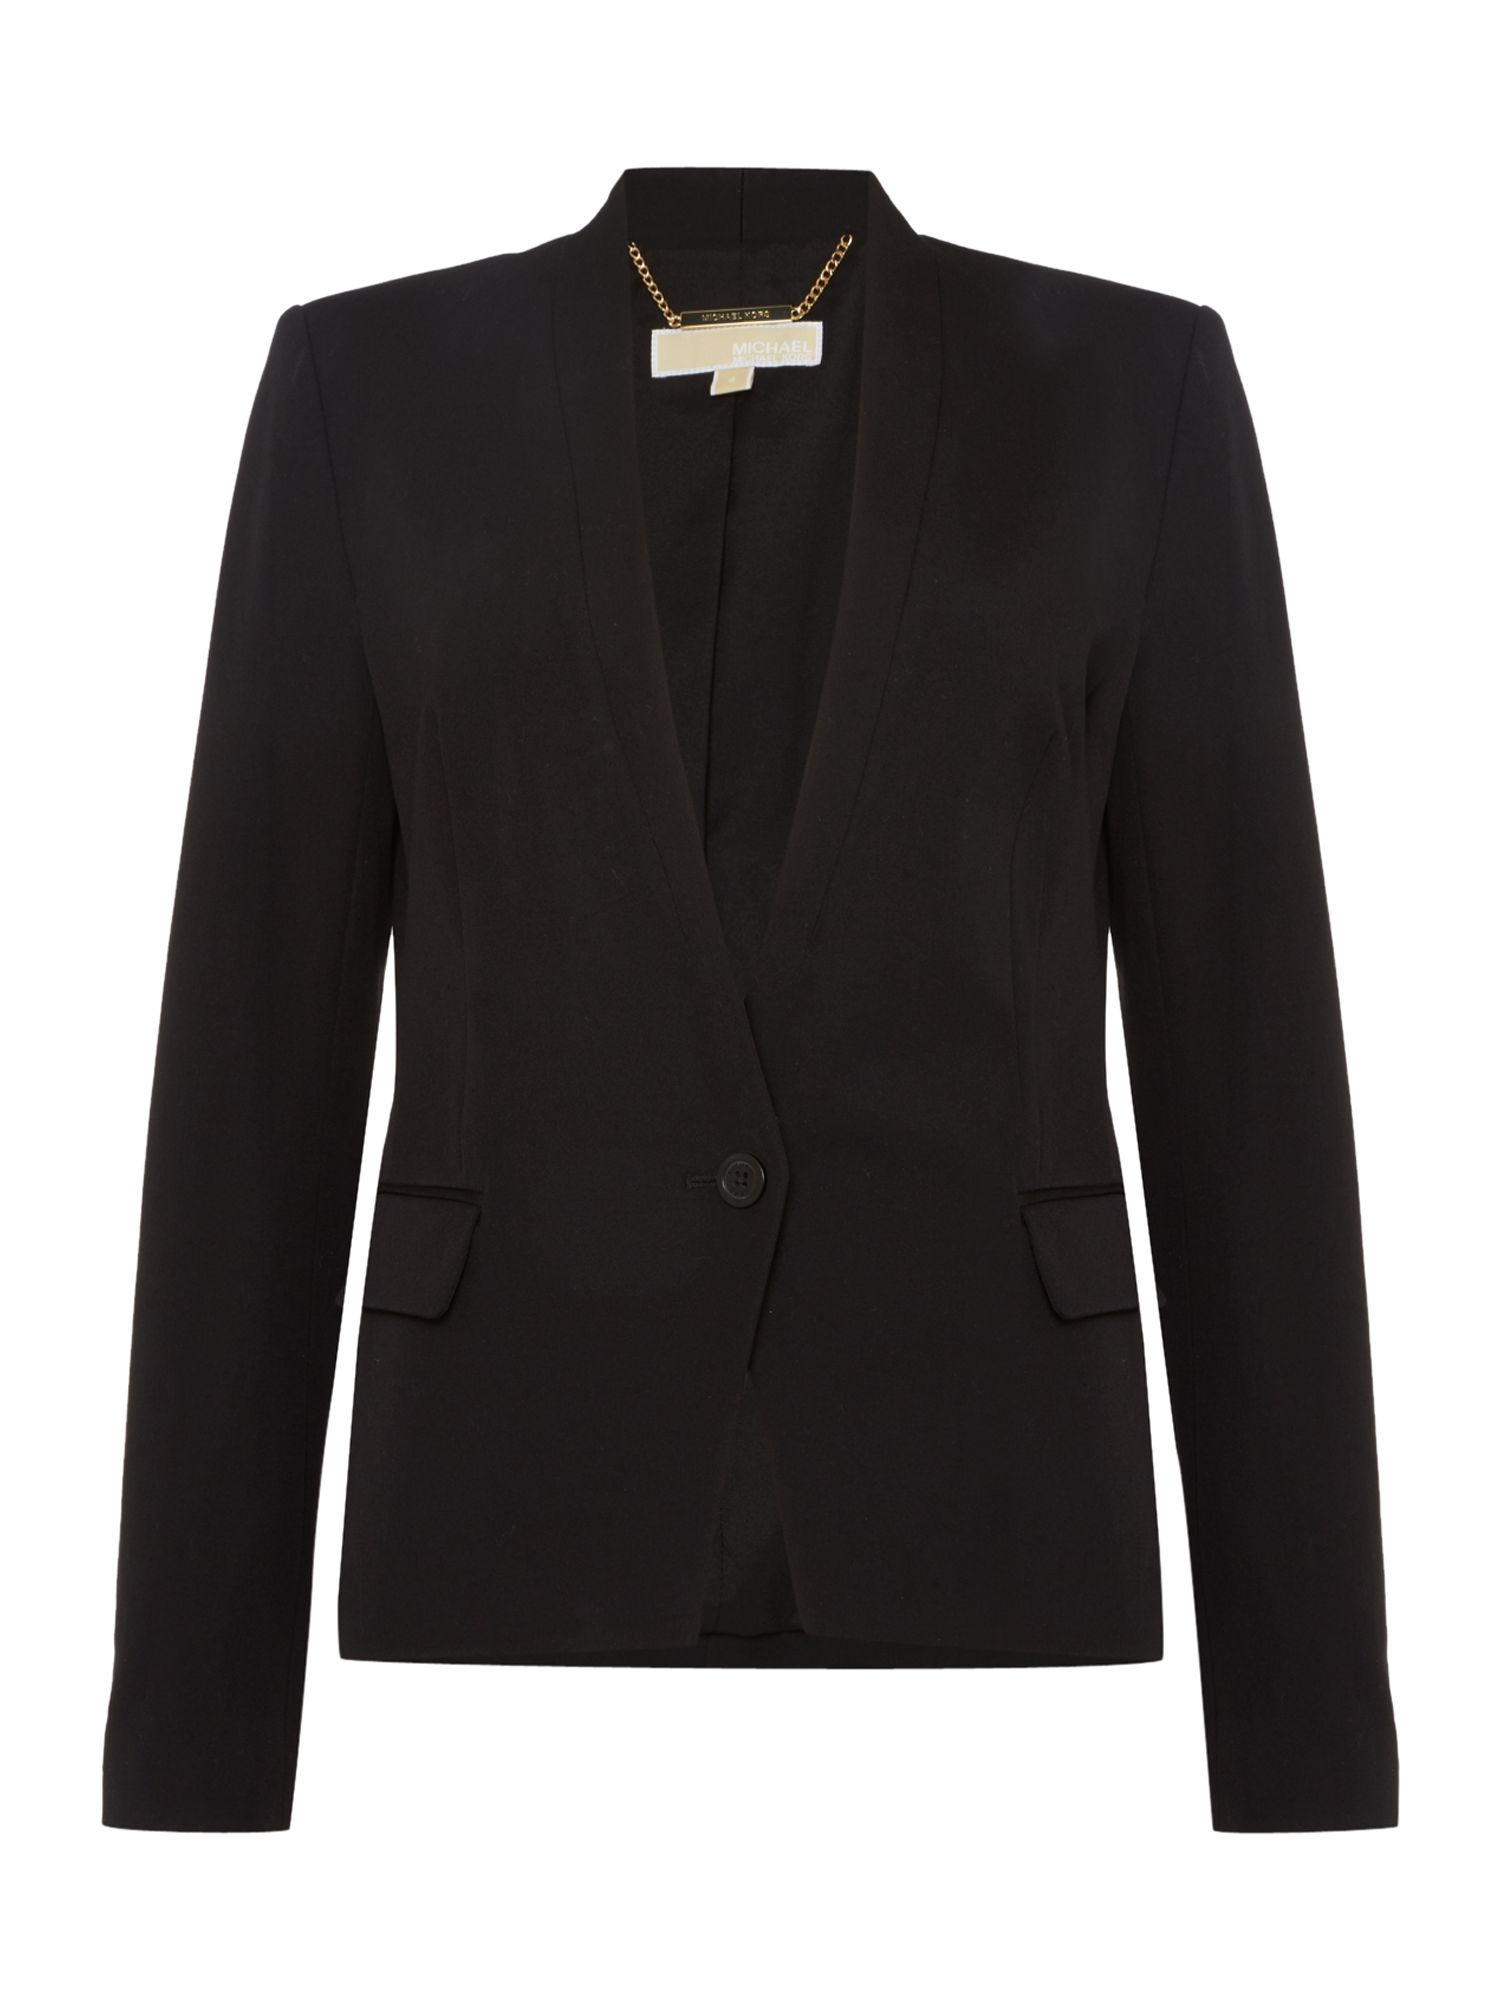 Michael Kors V Neck Blazer, Black